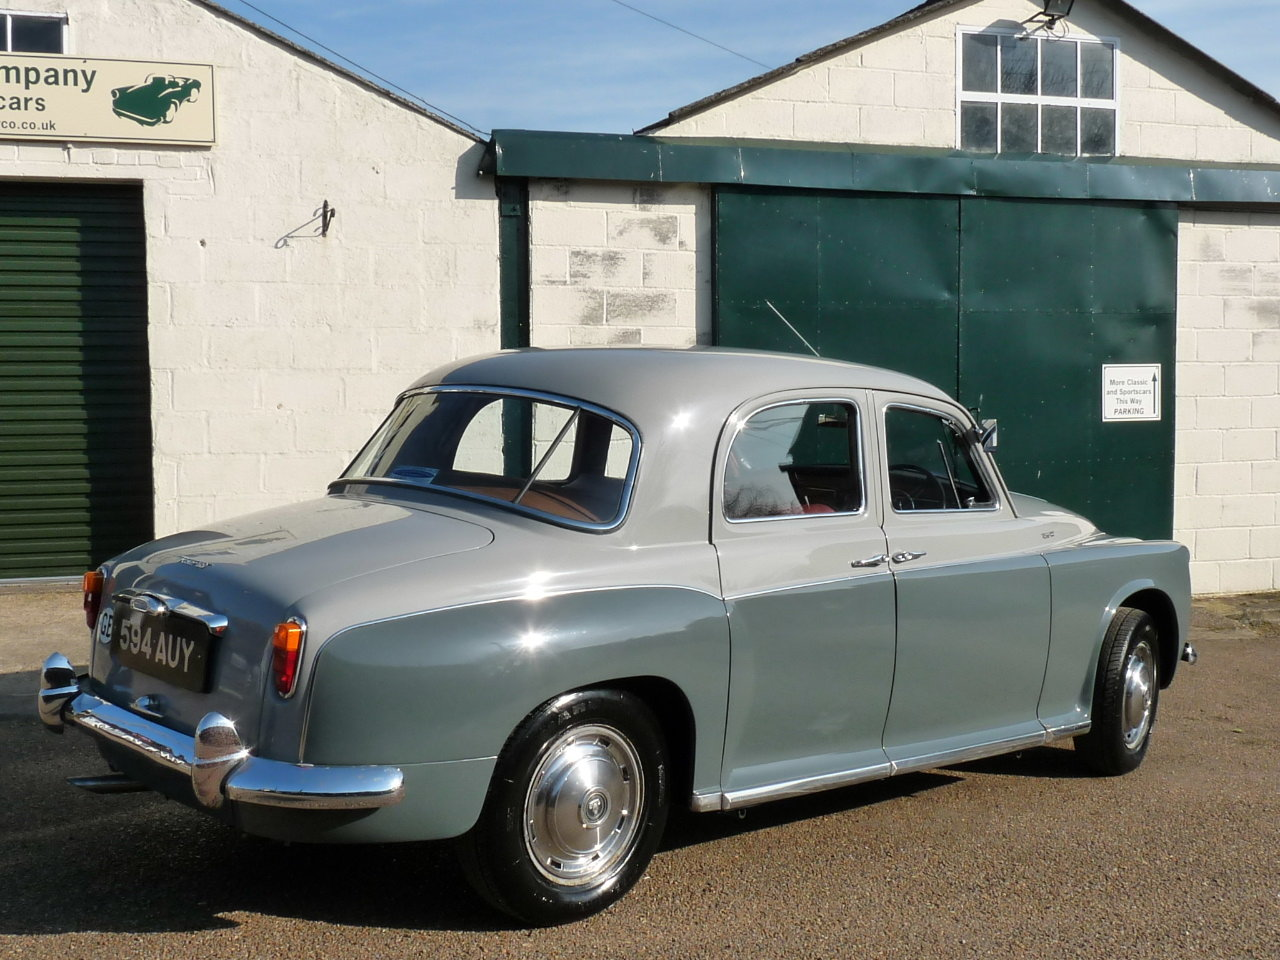 1960 Rover 100 P4, 3.0 litre Rover P5 engine fitted, Sold SOLD (picture 2 of 6)